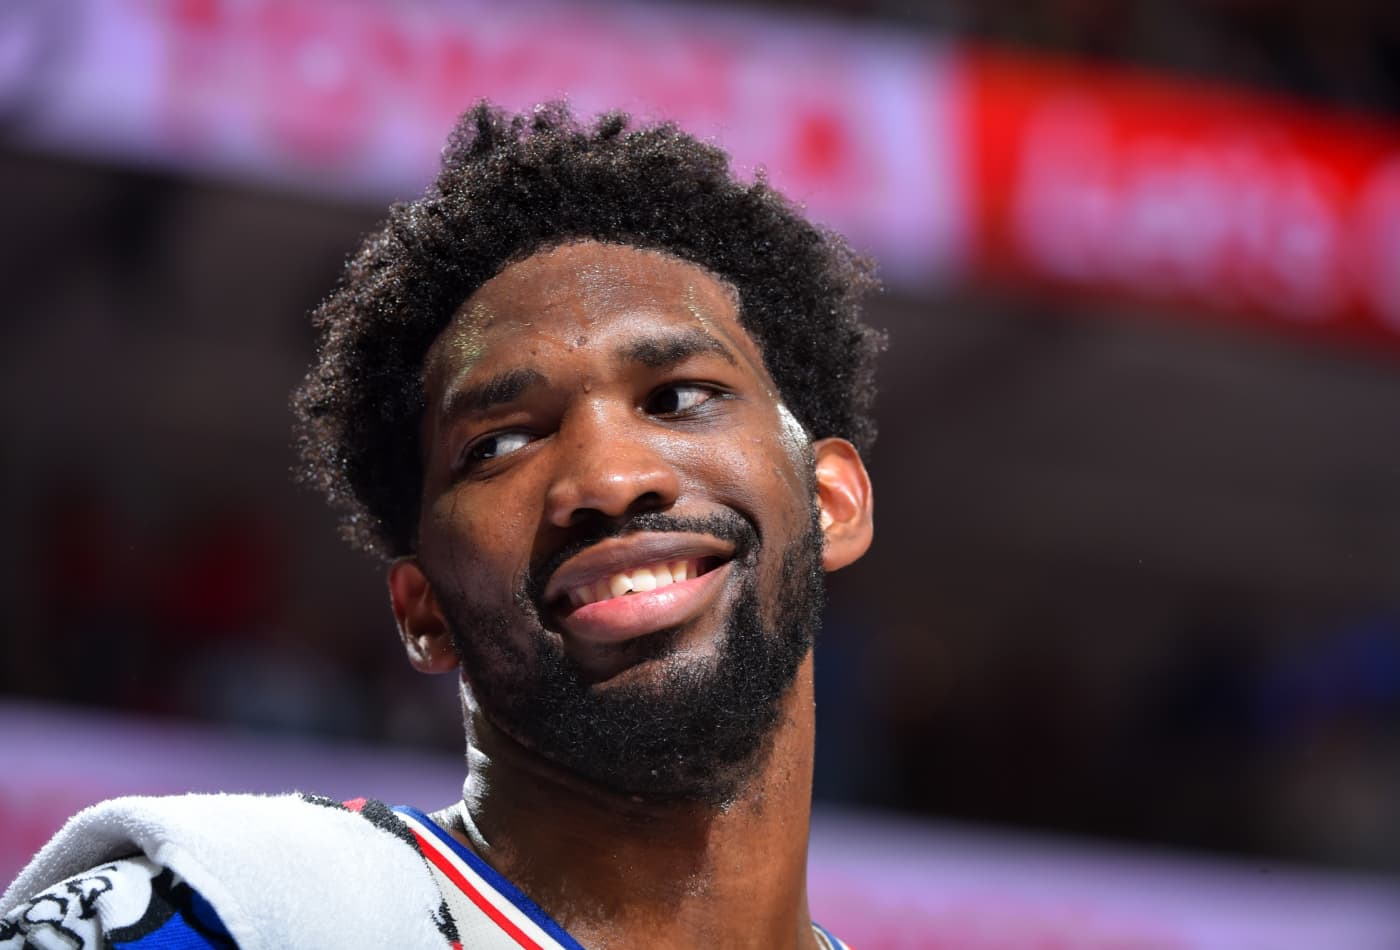 4adc21f02 NBA star Joel Embiid was so bad at basketball he watched YouTube videos to  improve — here s how he ultimately found success